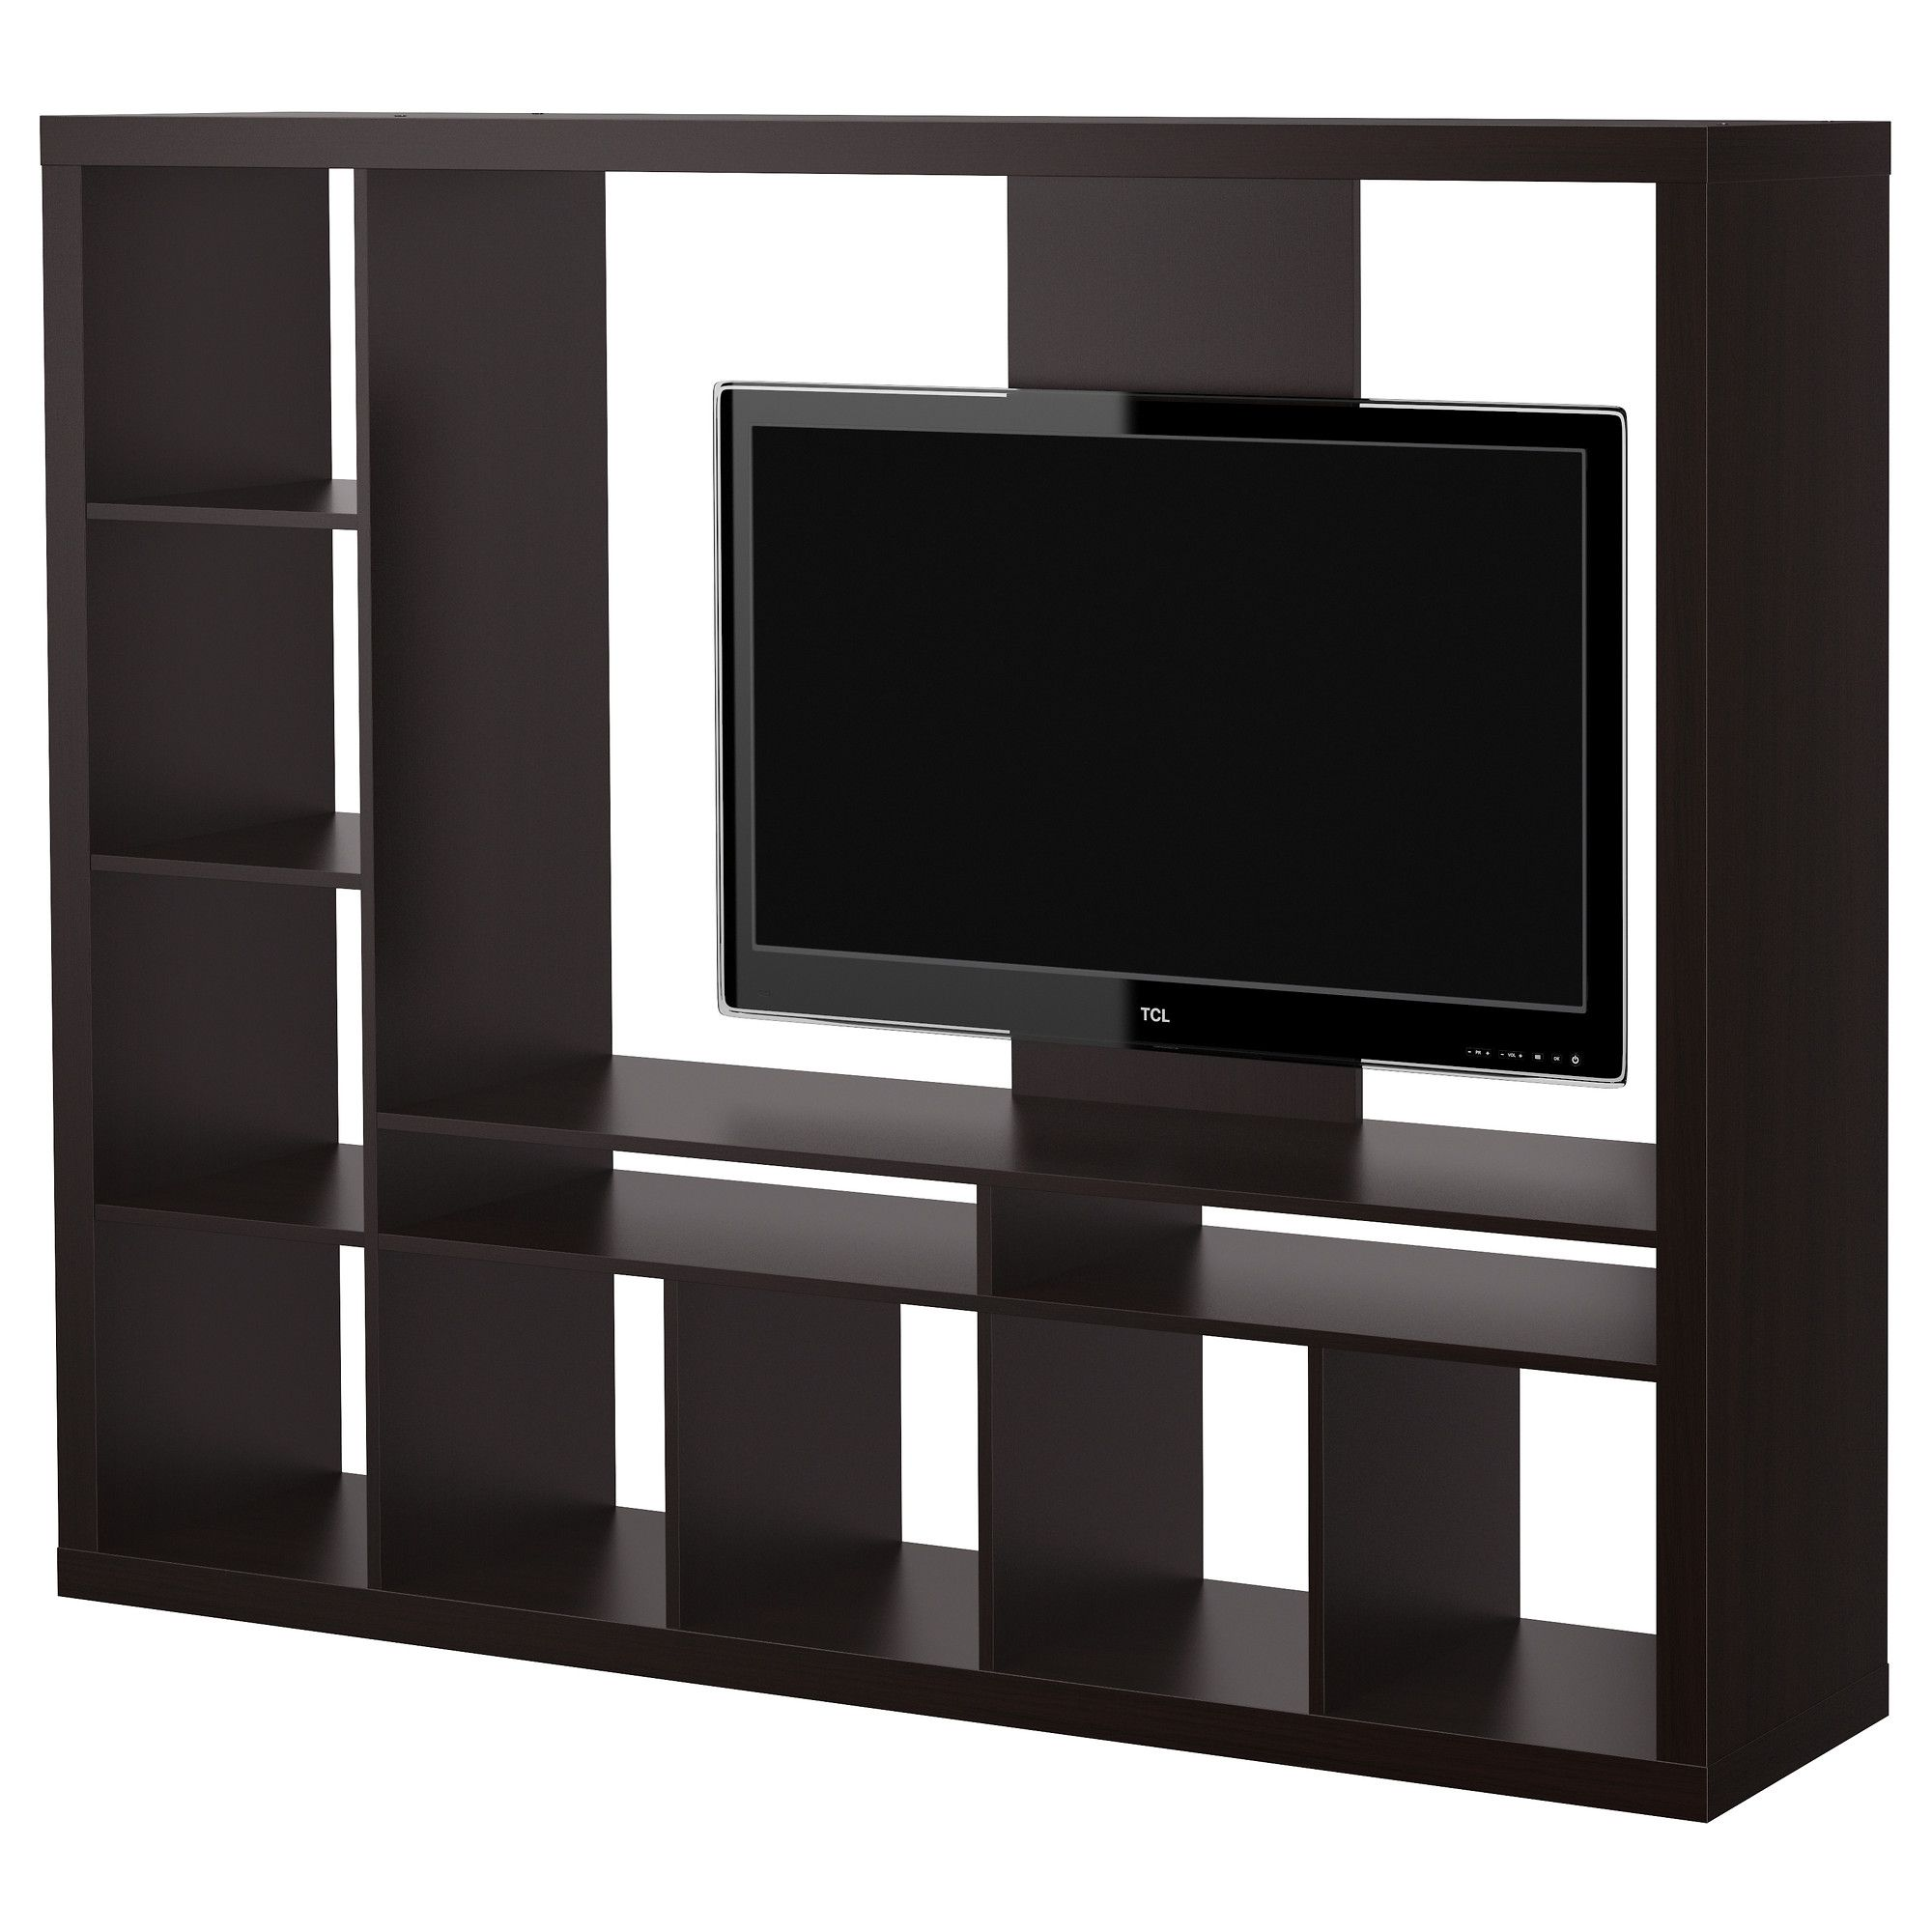 expedit meuble t l brun noir ikea bonnes id es pinterest. Black Bedroom Furniture Sets. Home Design Ideas